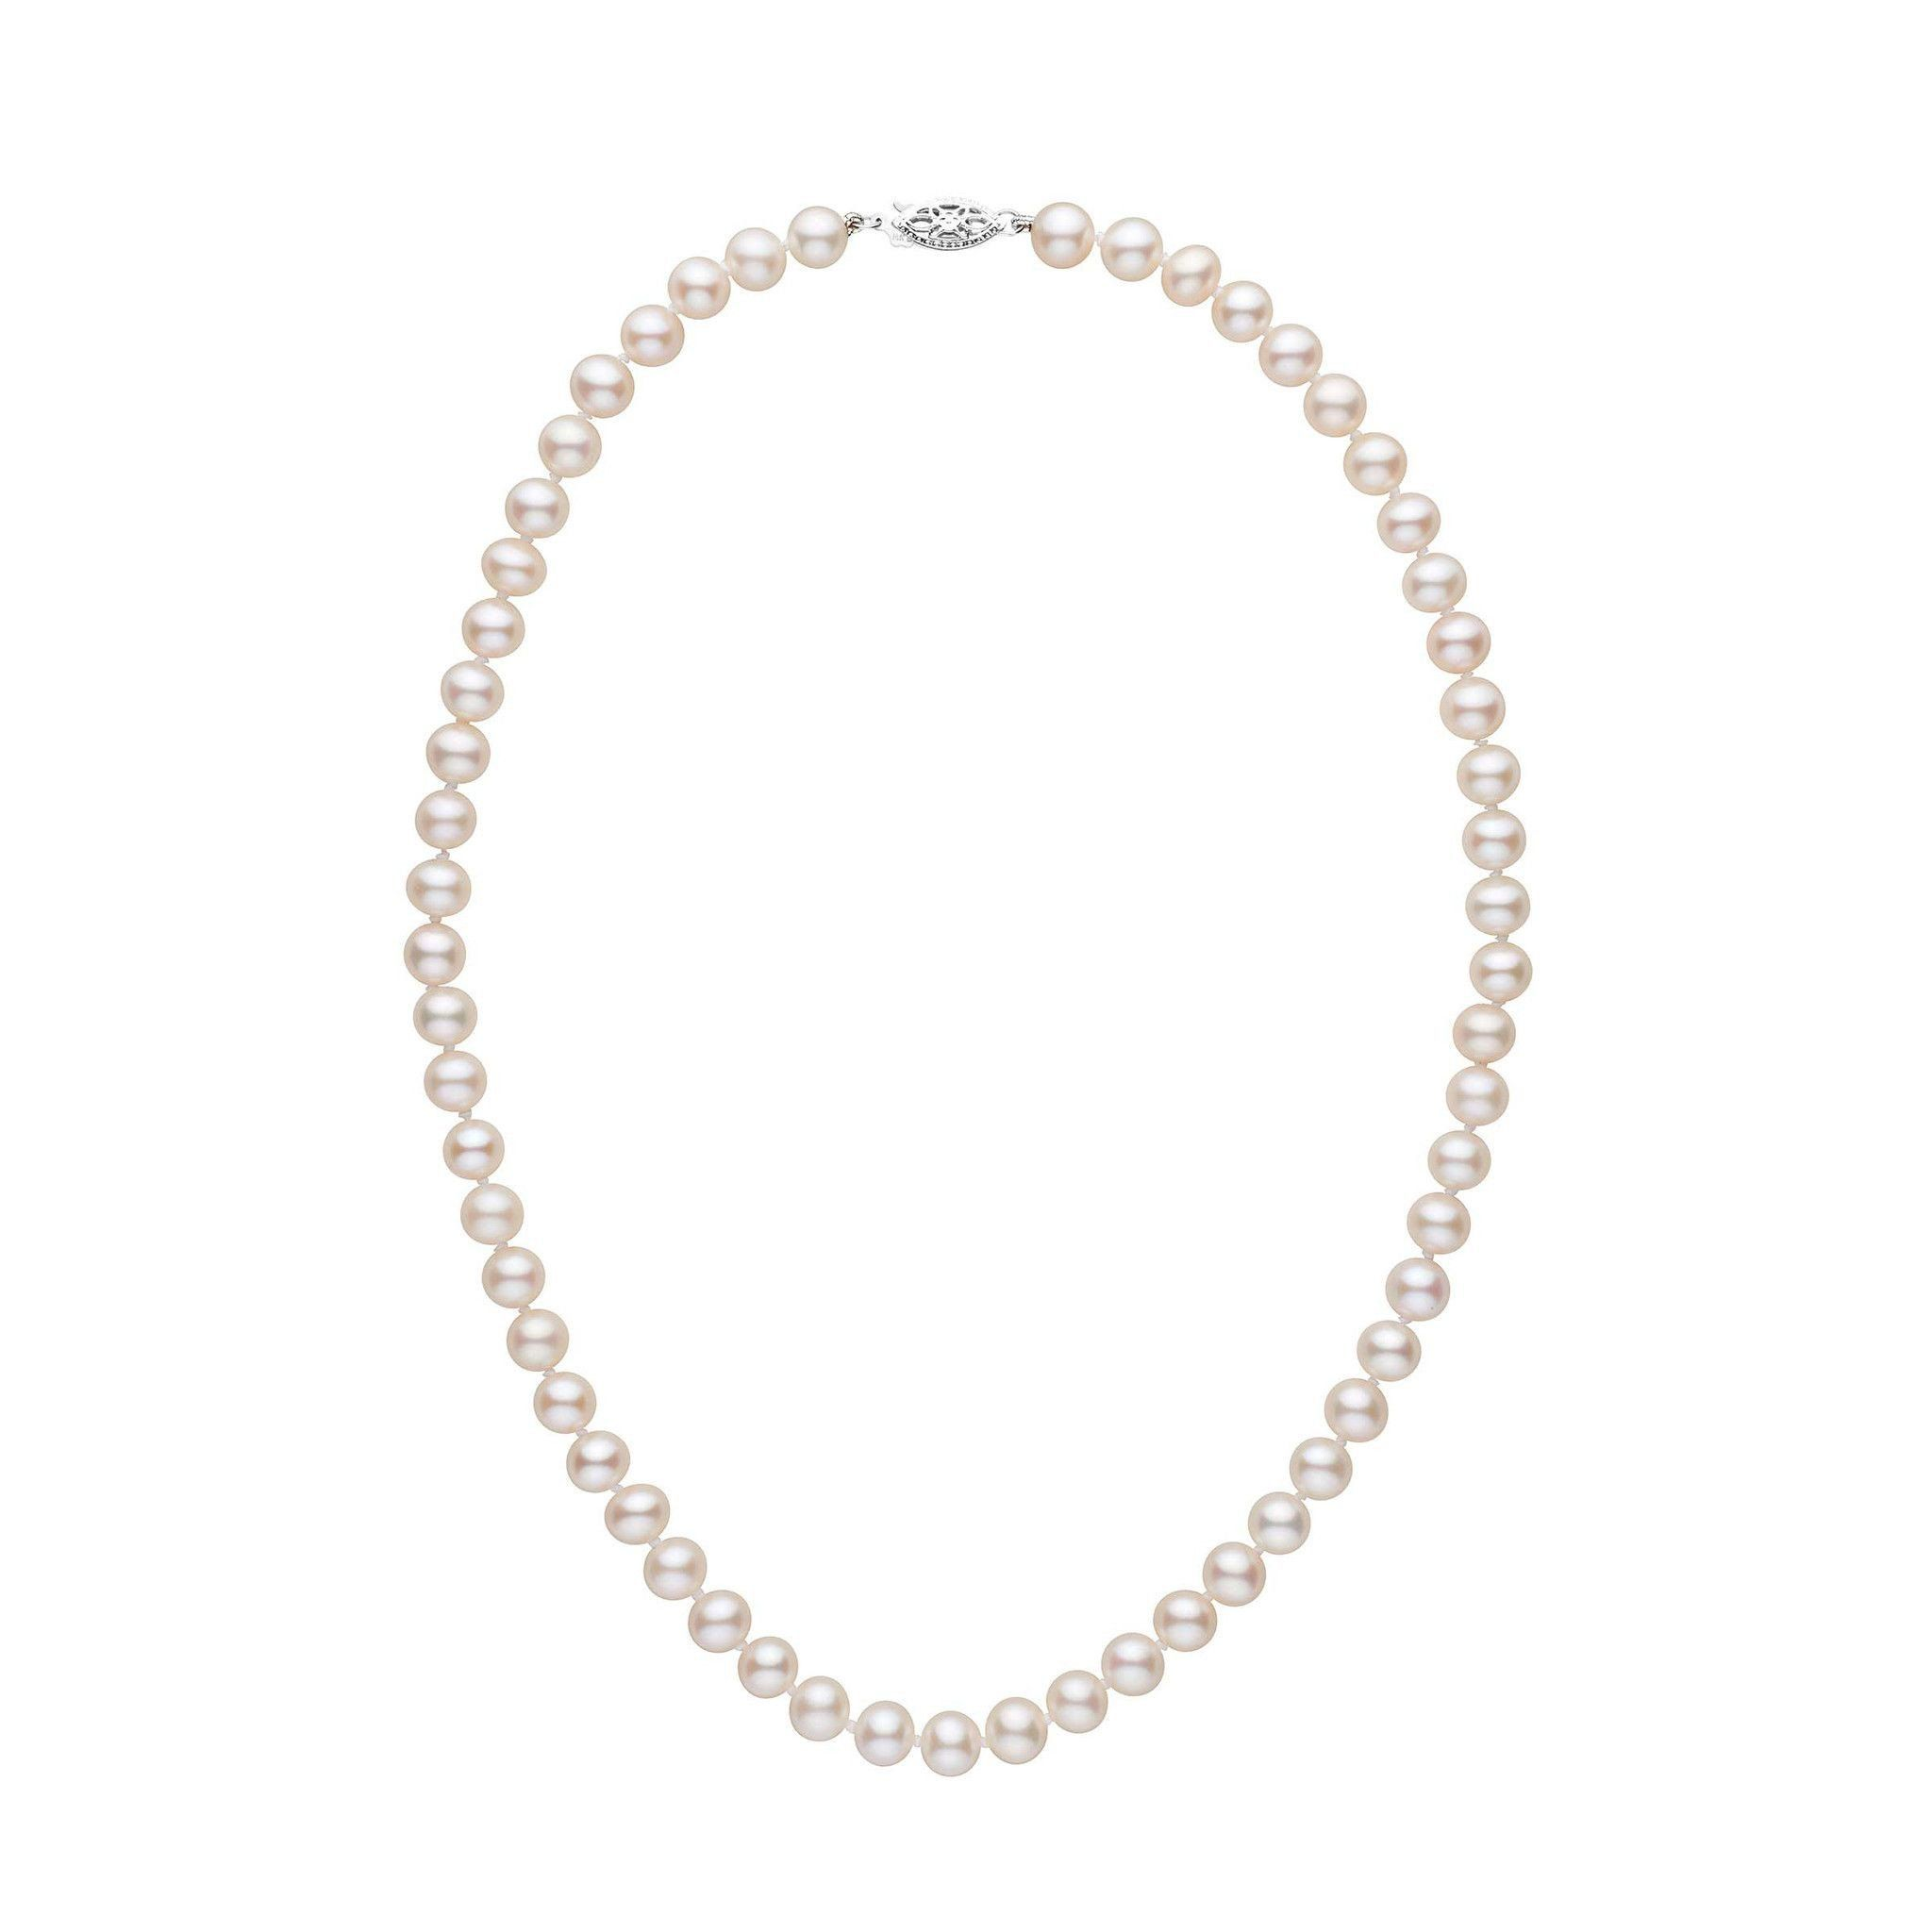 6.5-7.0 mm 16 Inch AAA White Freshwater Pearl Necklace